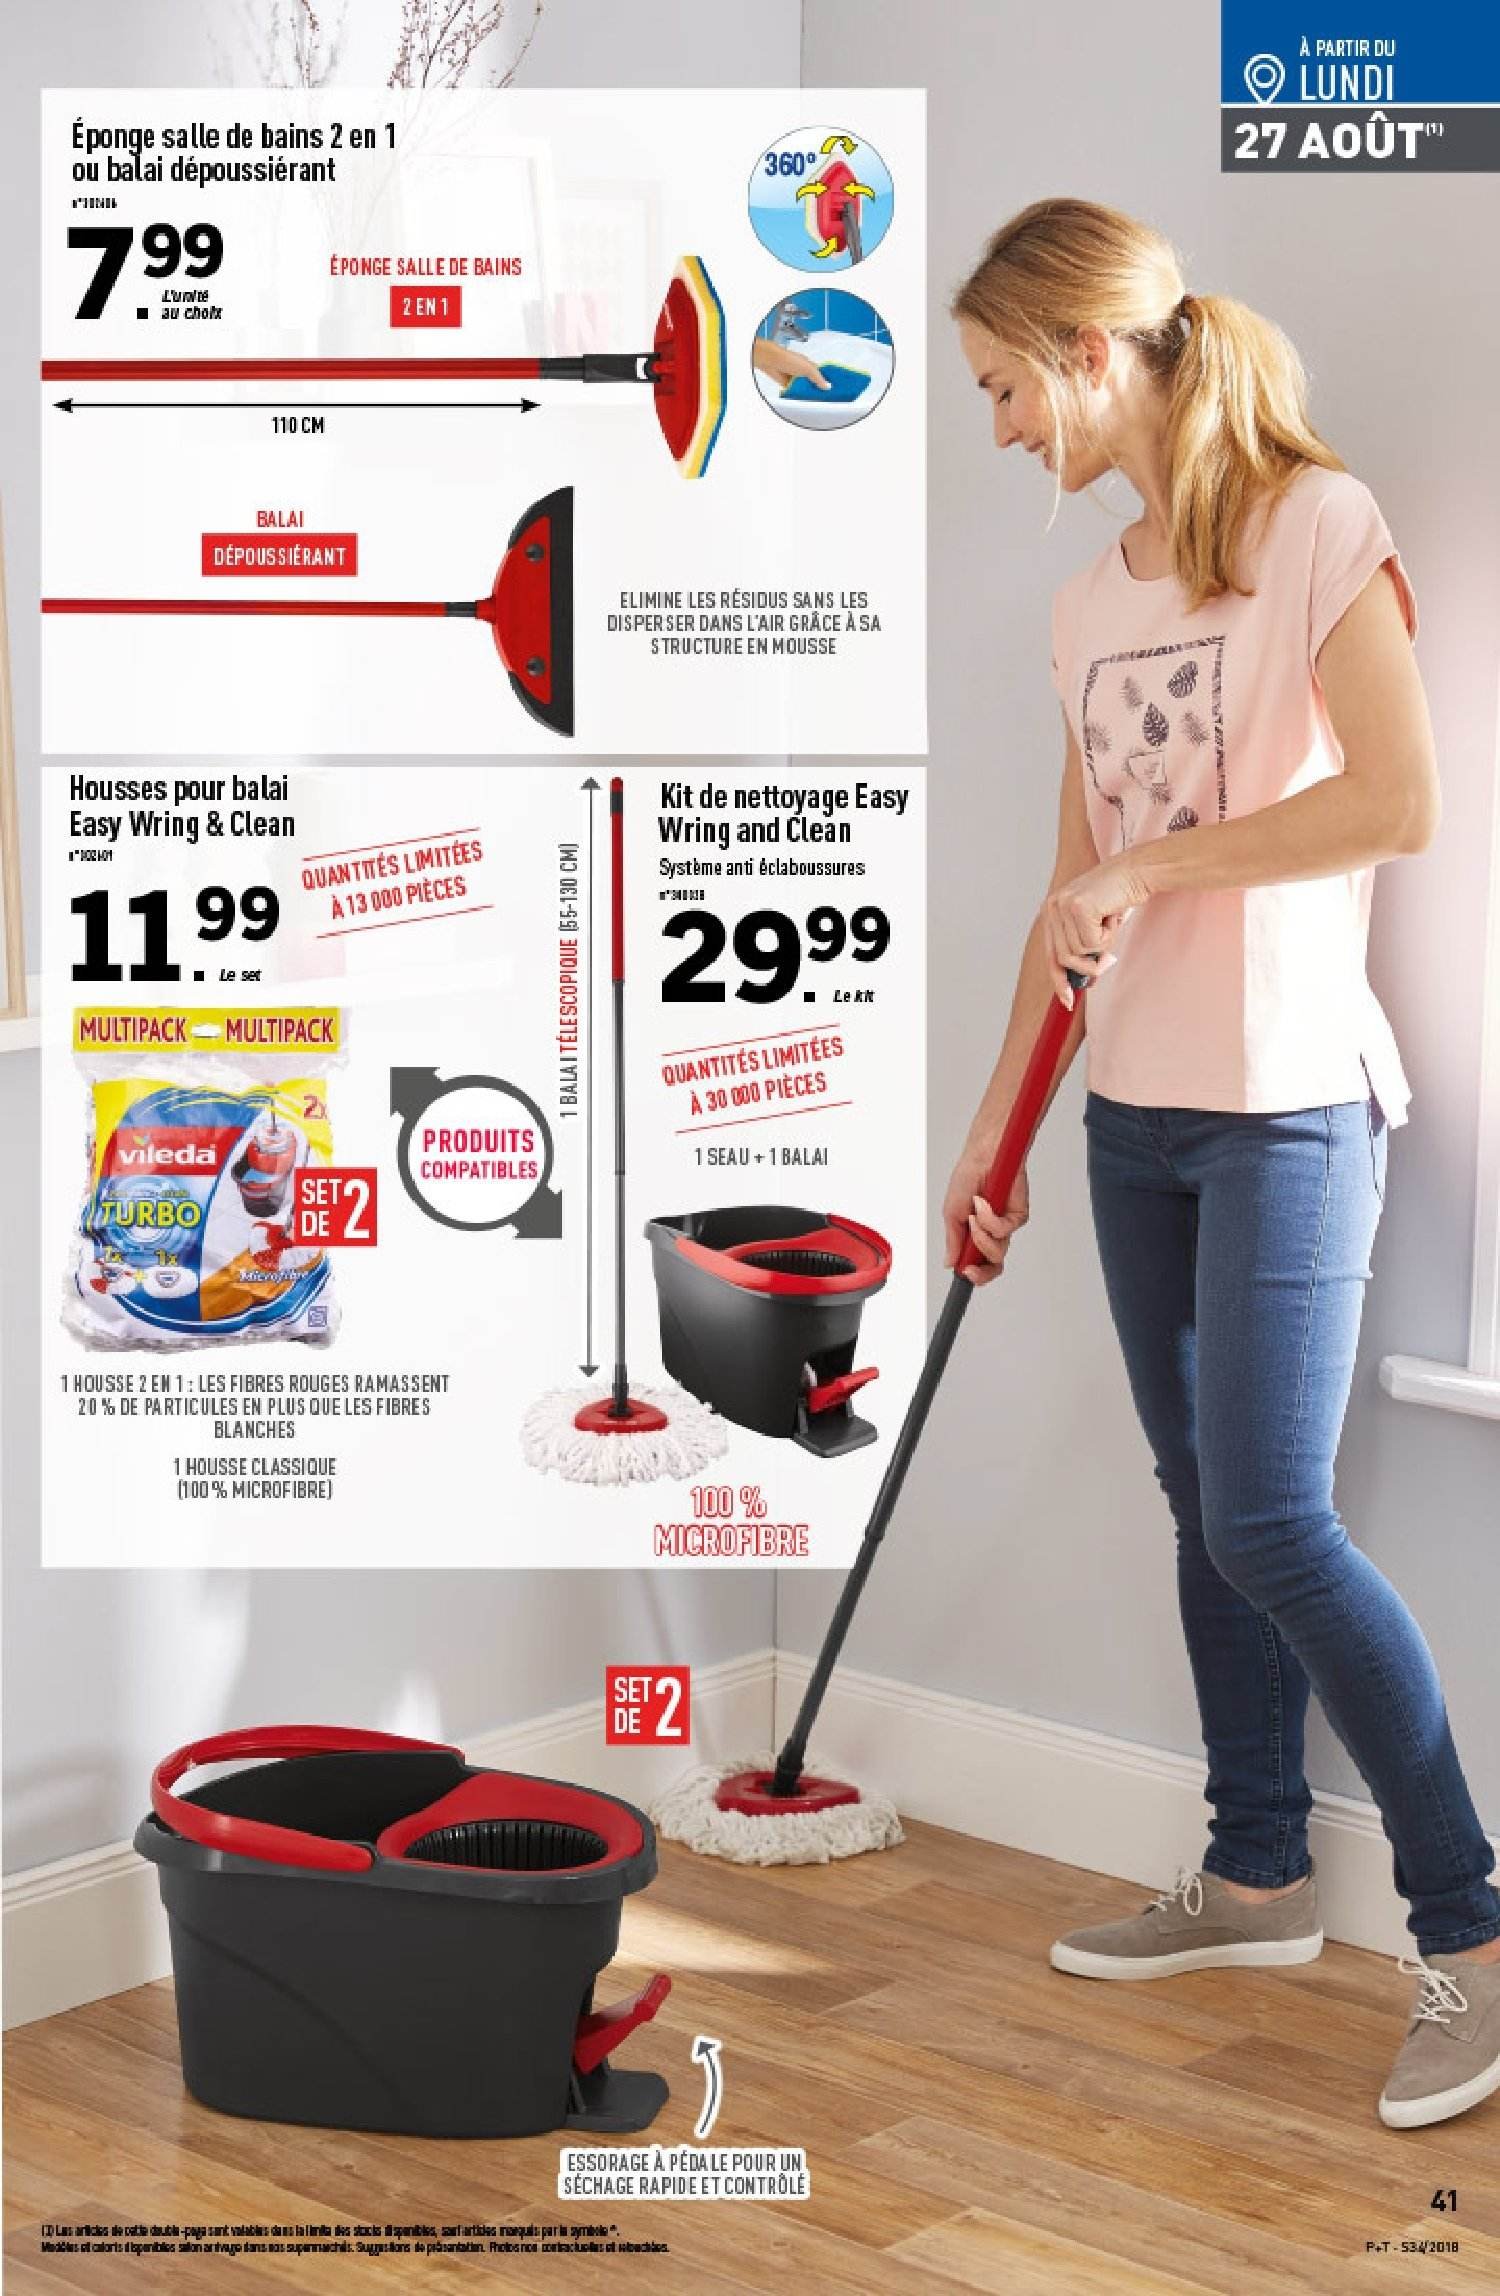 Catalogue Lidl - 22.08.2018 - 28.08.2018. Page 41.